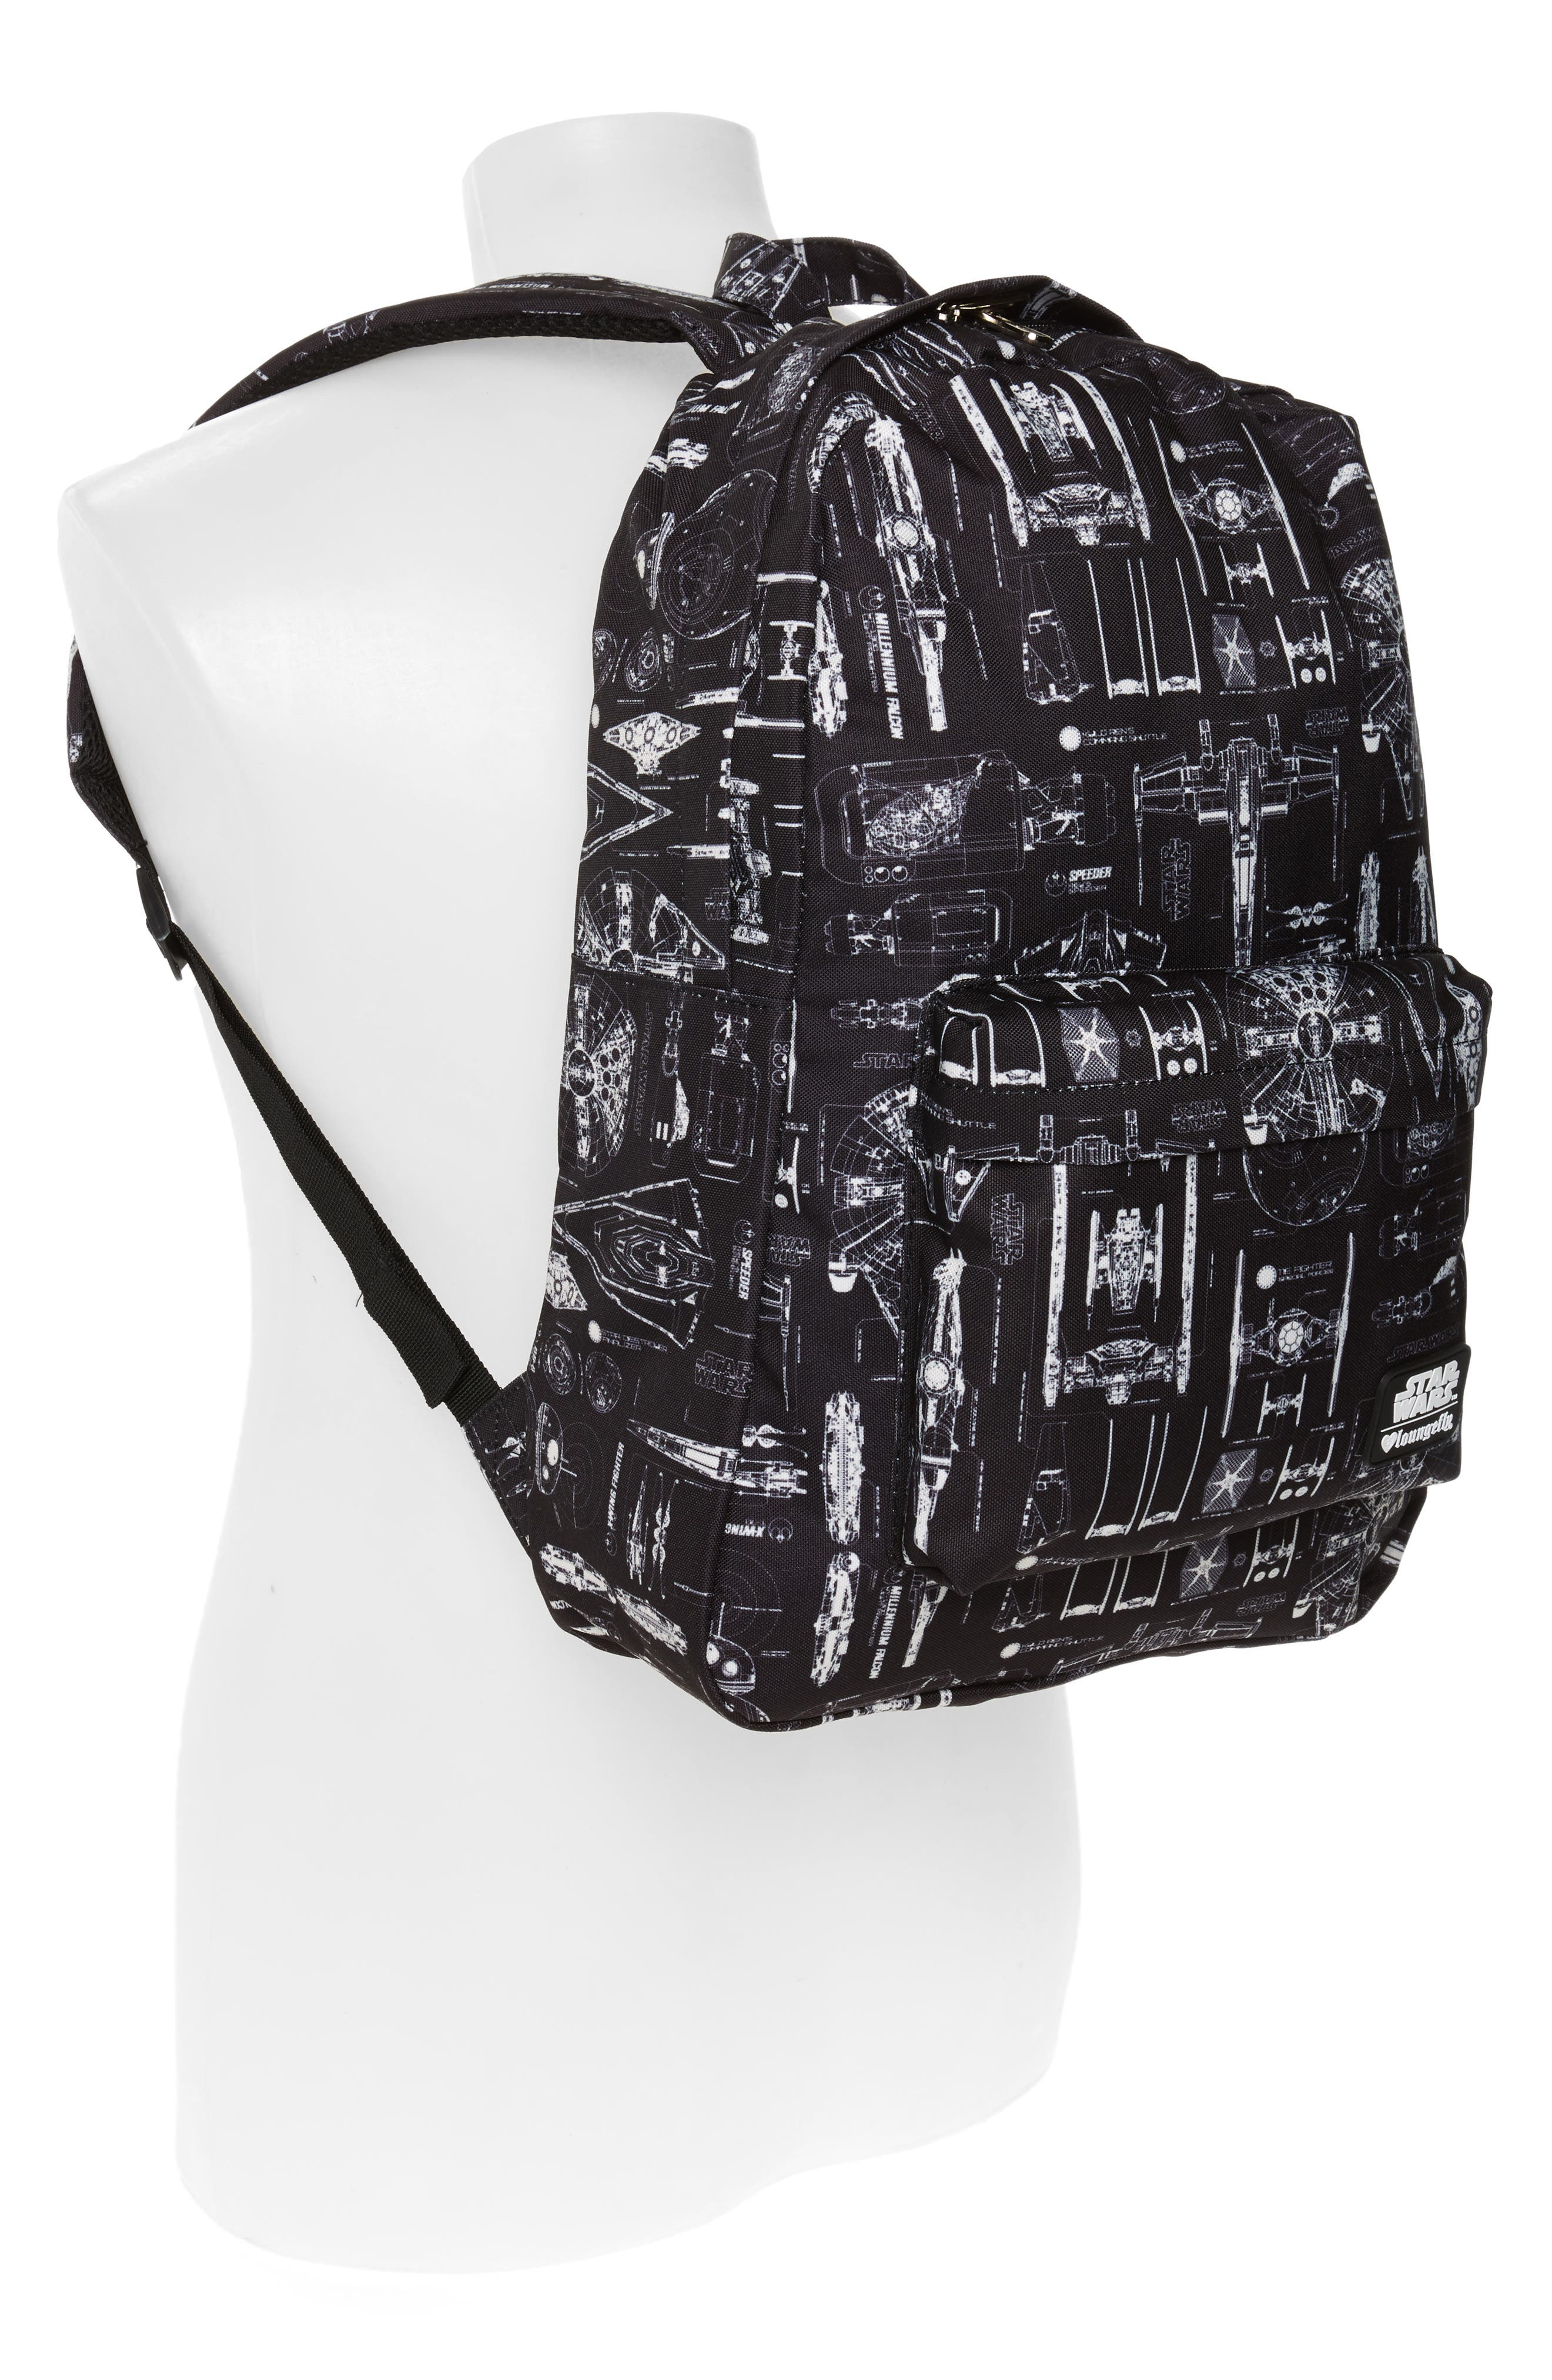 Star Wars<sup>™</sup> The Force Awakens Blueprint Backpack,                             Alternate thumbnail 2, color,                             001